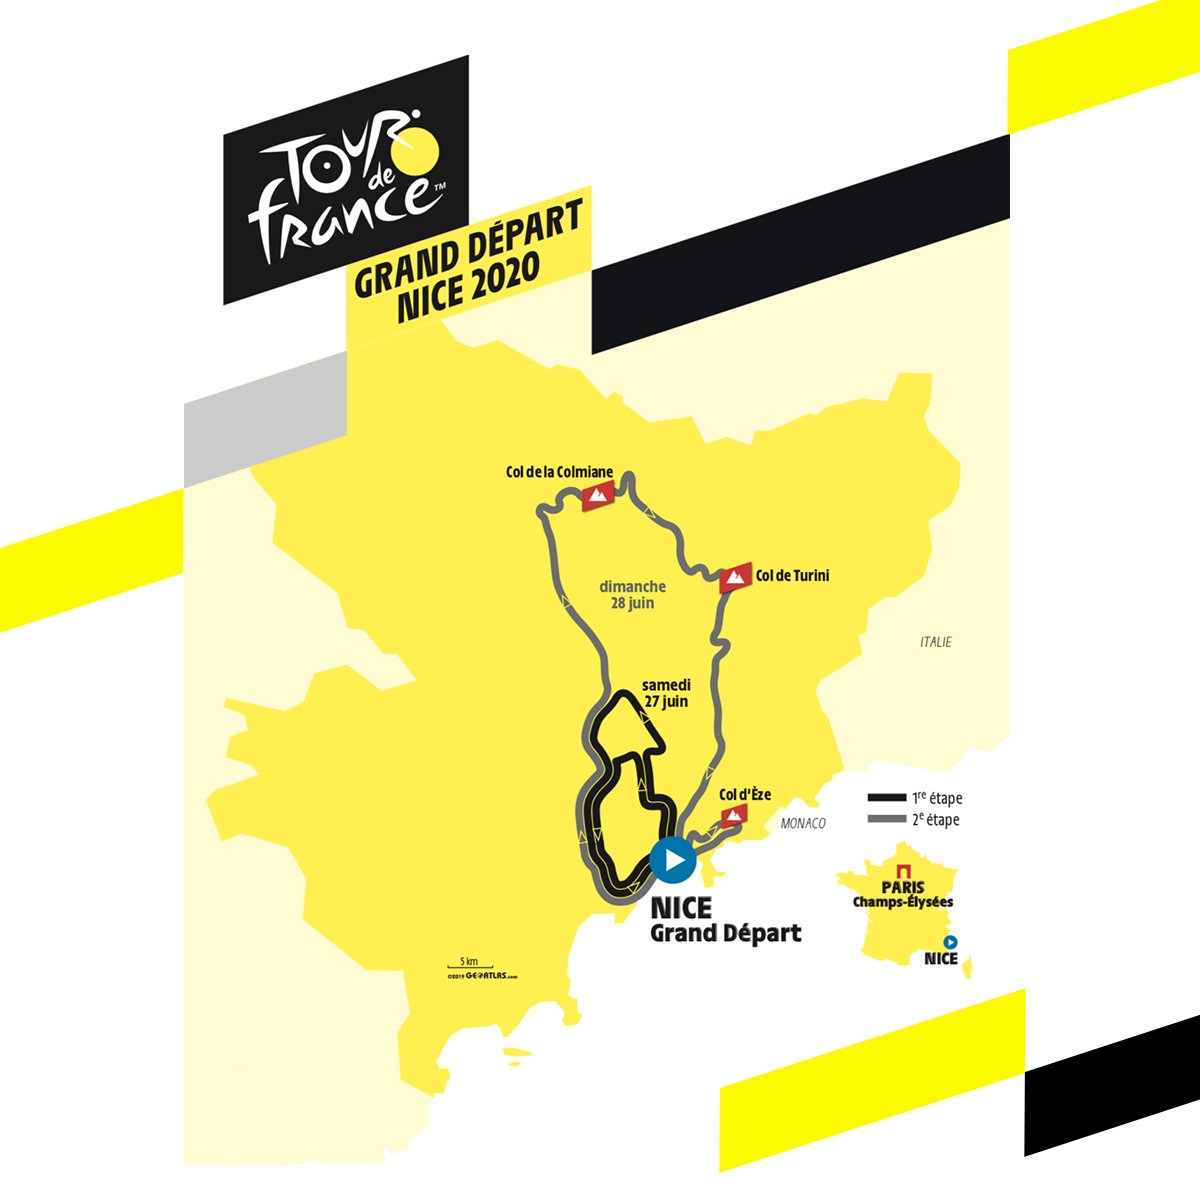 Tour De Francia 2020 Nice Cycling Paradise on Twitter: